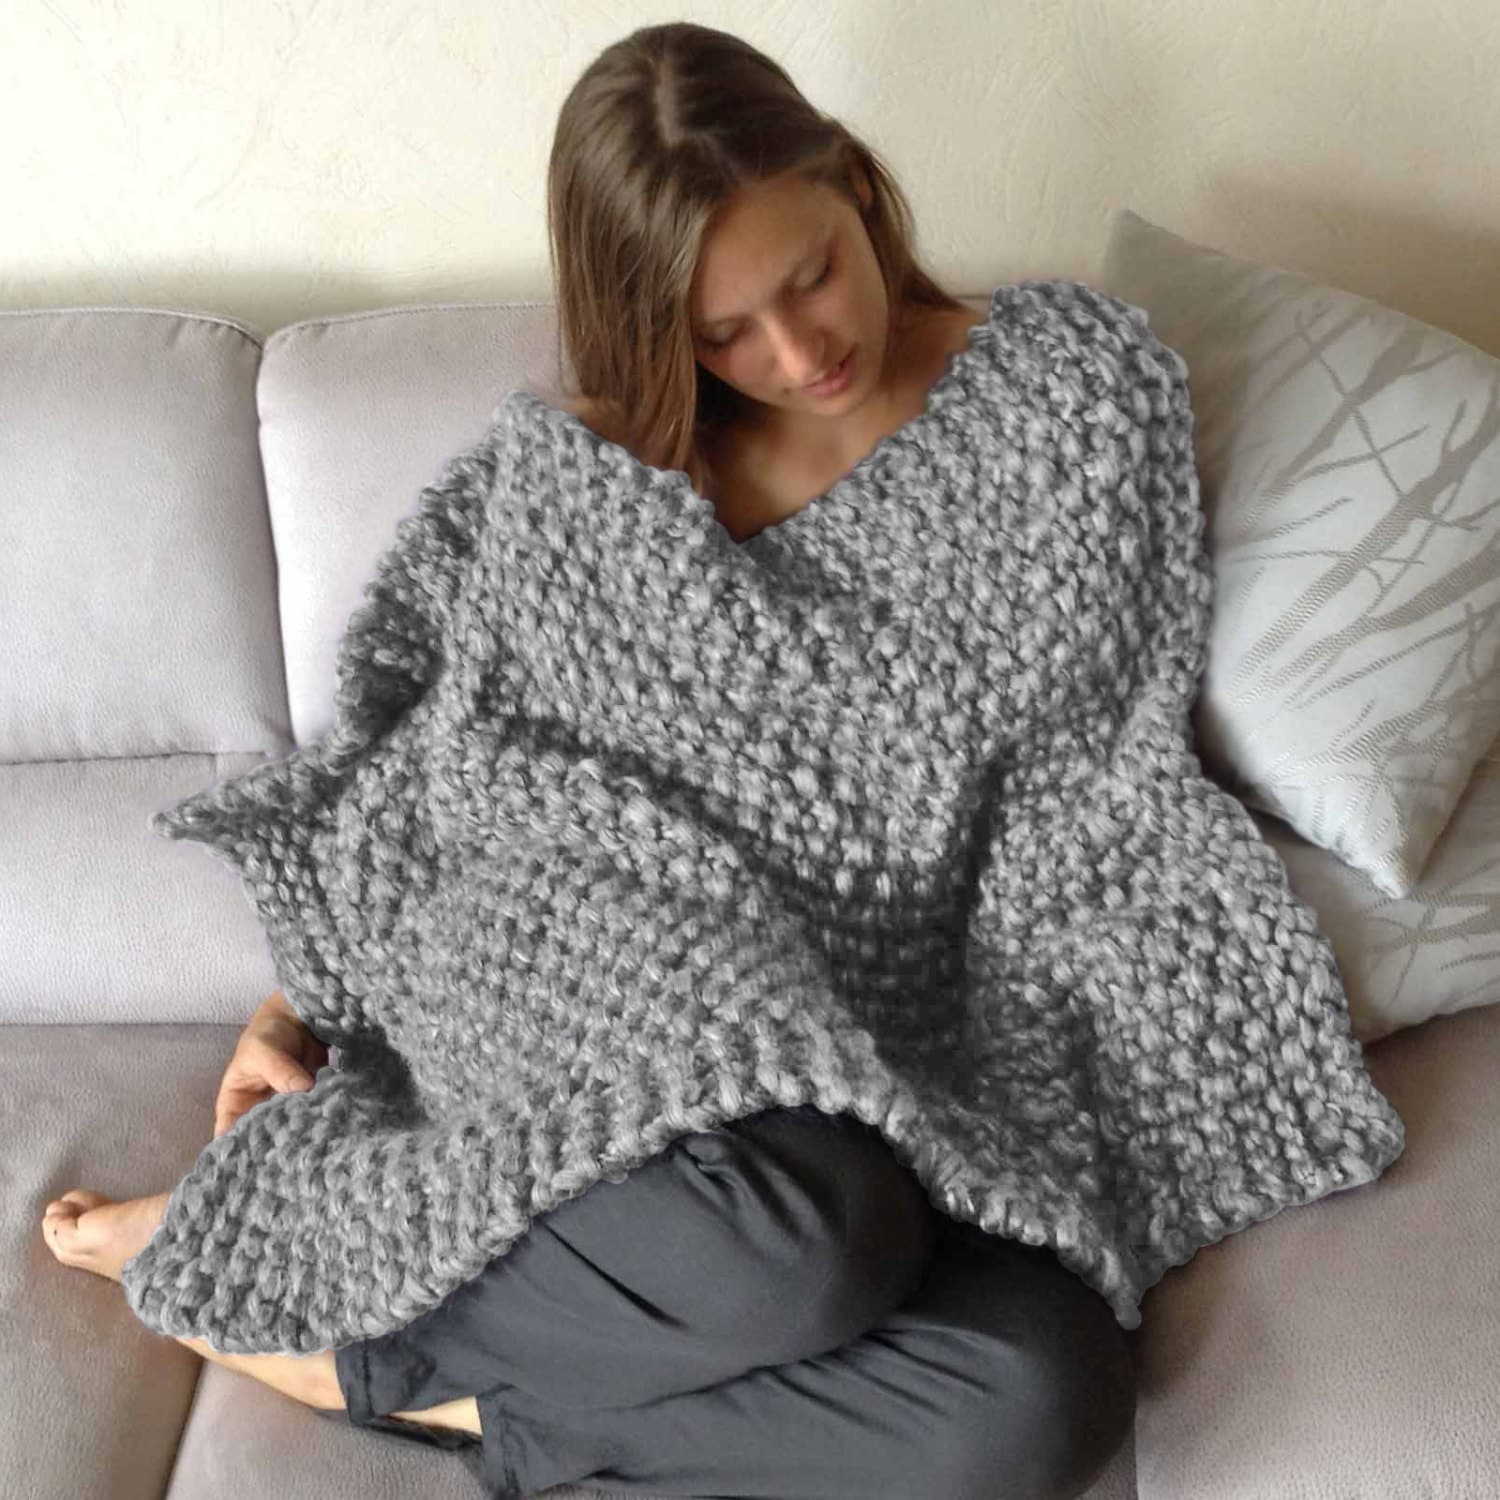 Knitting Wool Blanket : Chunky wool blanket knitting kit super bulky merino tencel